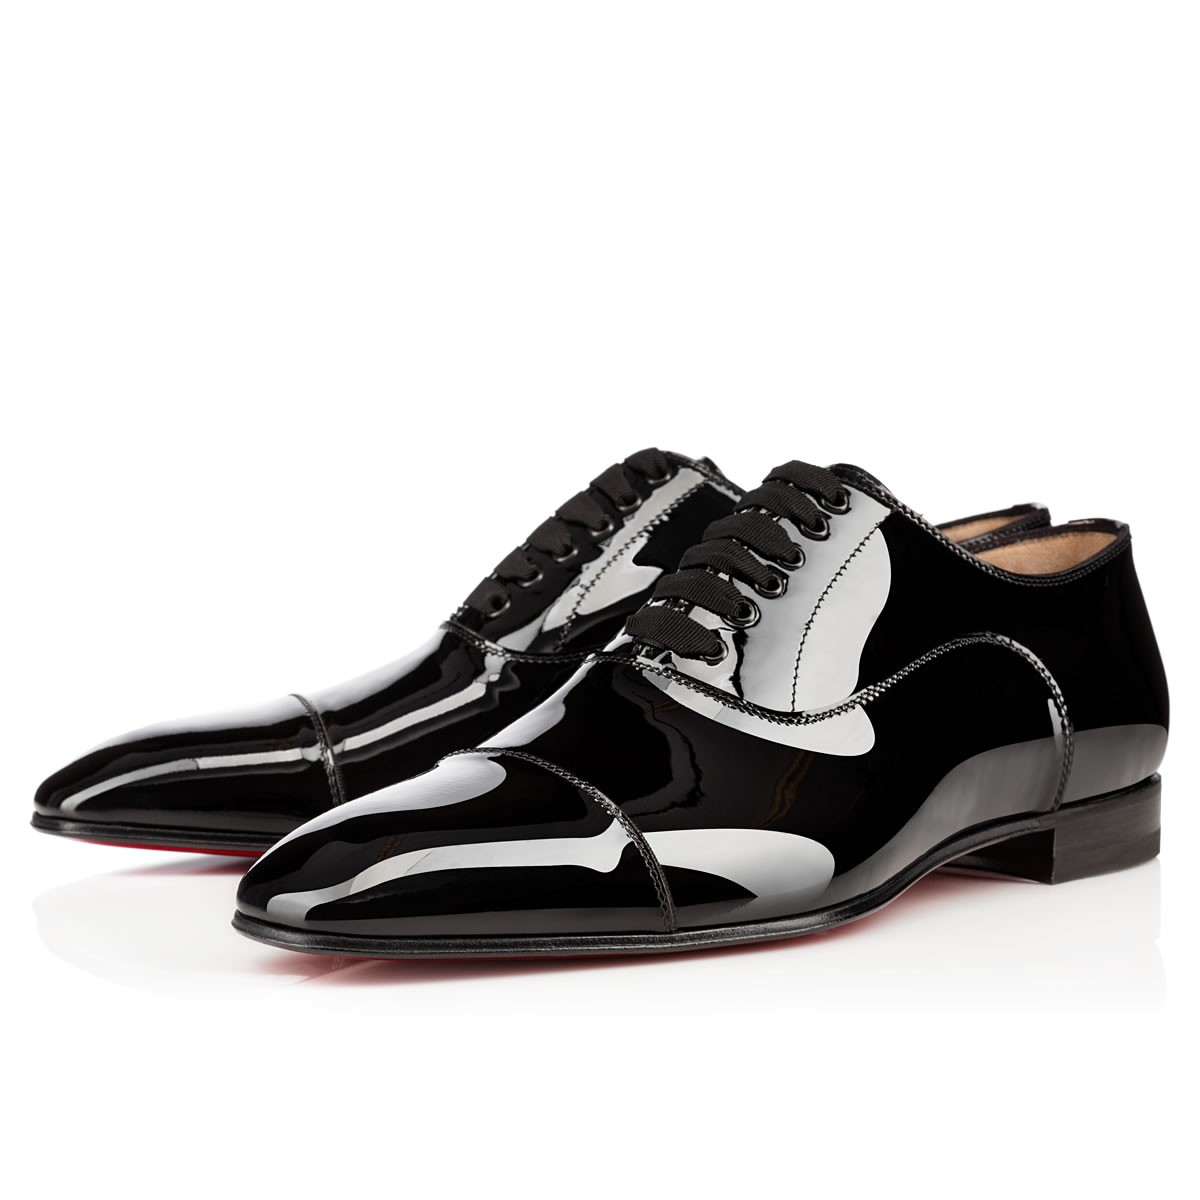 0a5208fe5 Christian Louboutin Greggo Patent-Leather Derby Shoes In Black ...